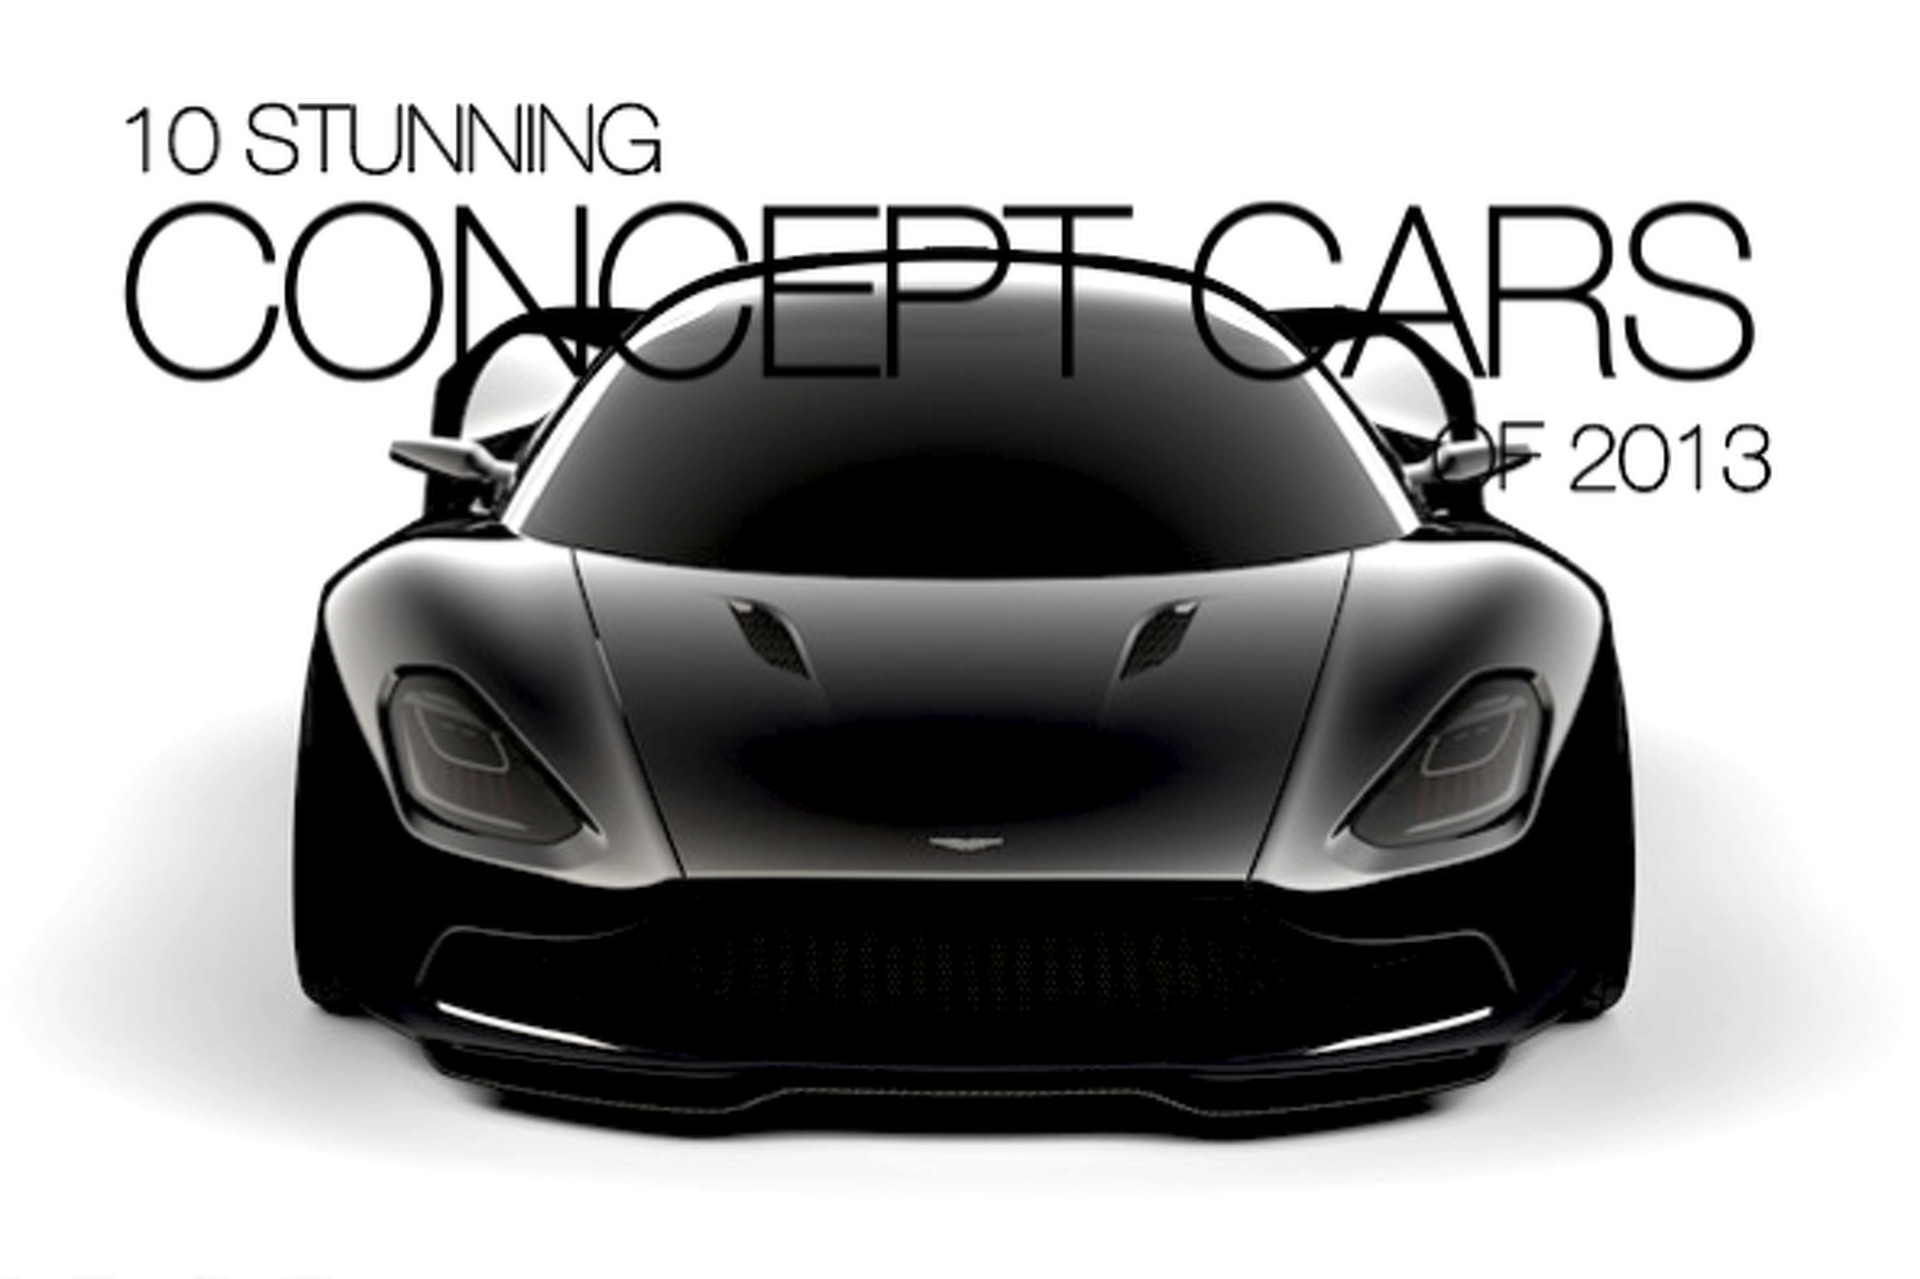 10 Stunning Concept Cars of 2013